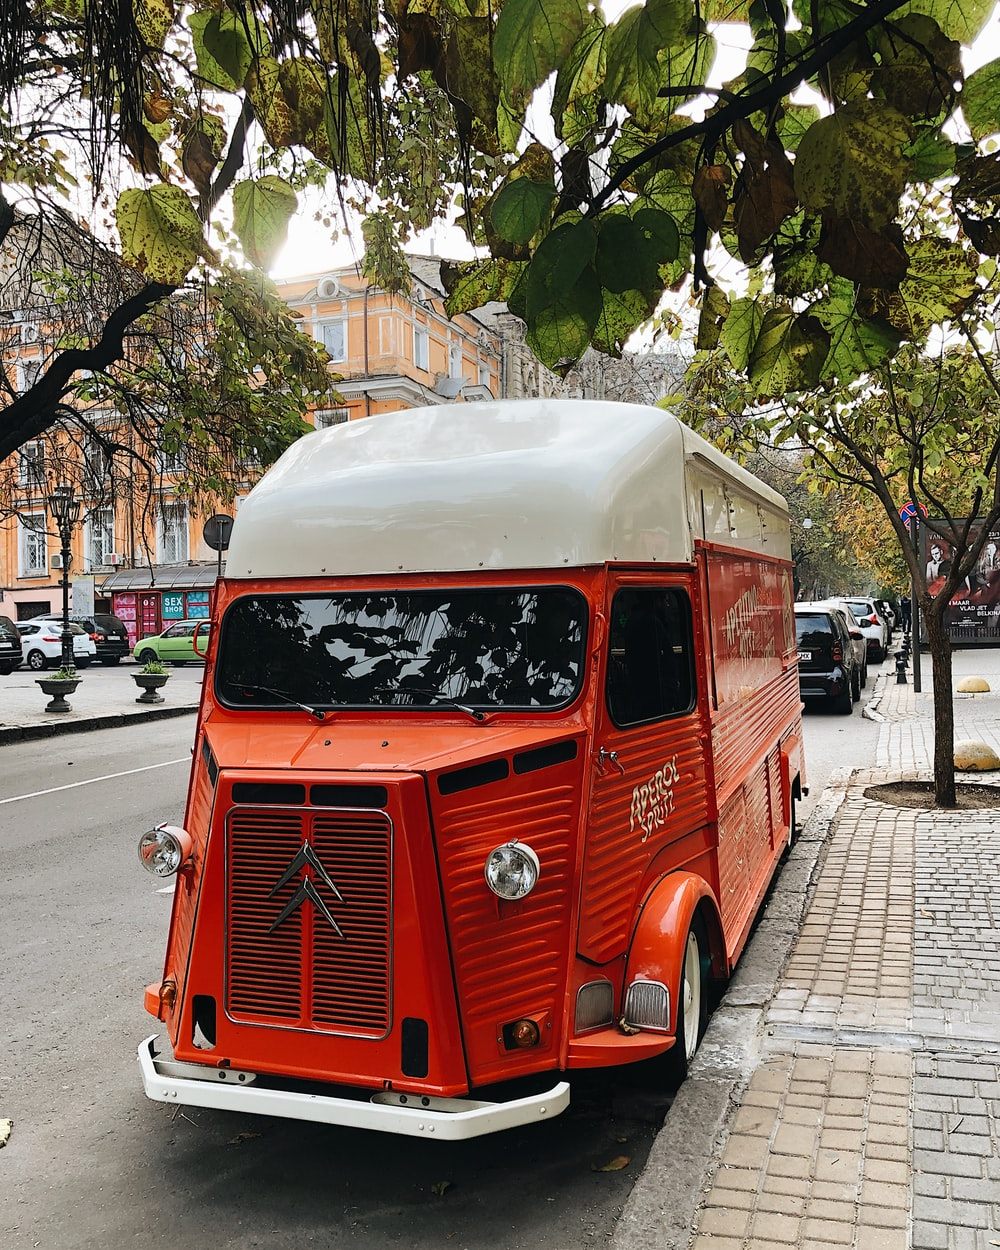 red and white van on road during daytime